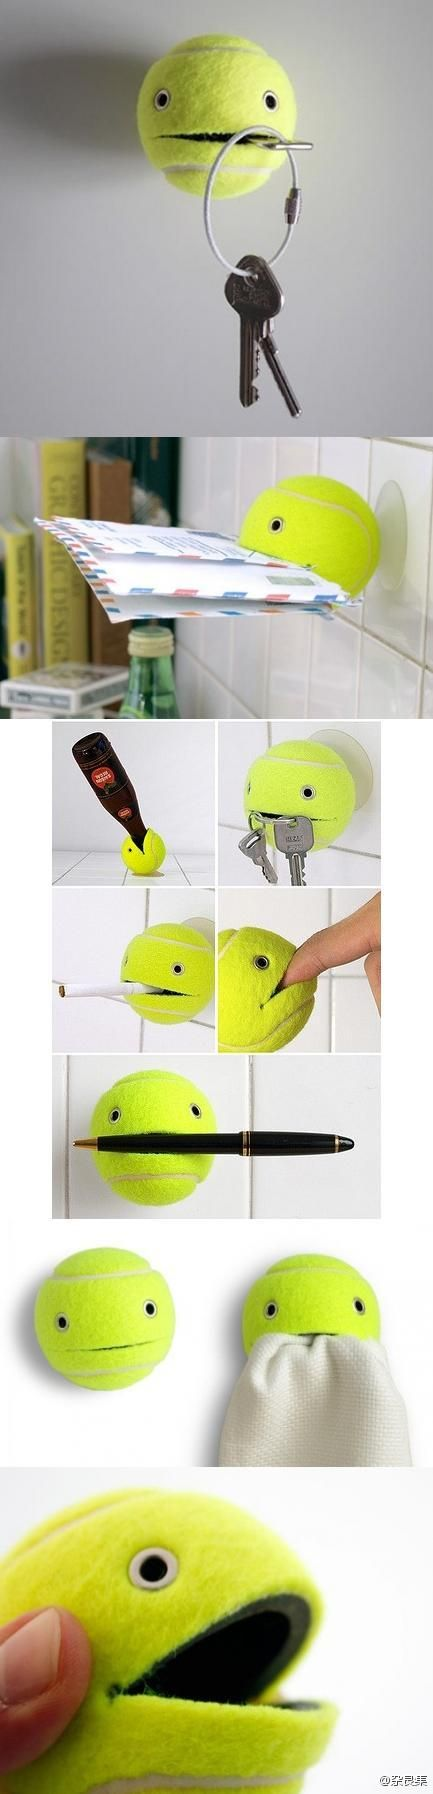 Tennis Ball everything holder.  Just Tennis Ball, suction cup, & Googly eyes.